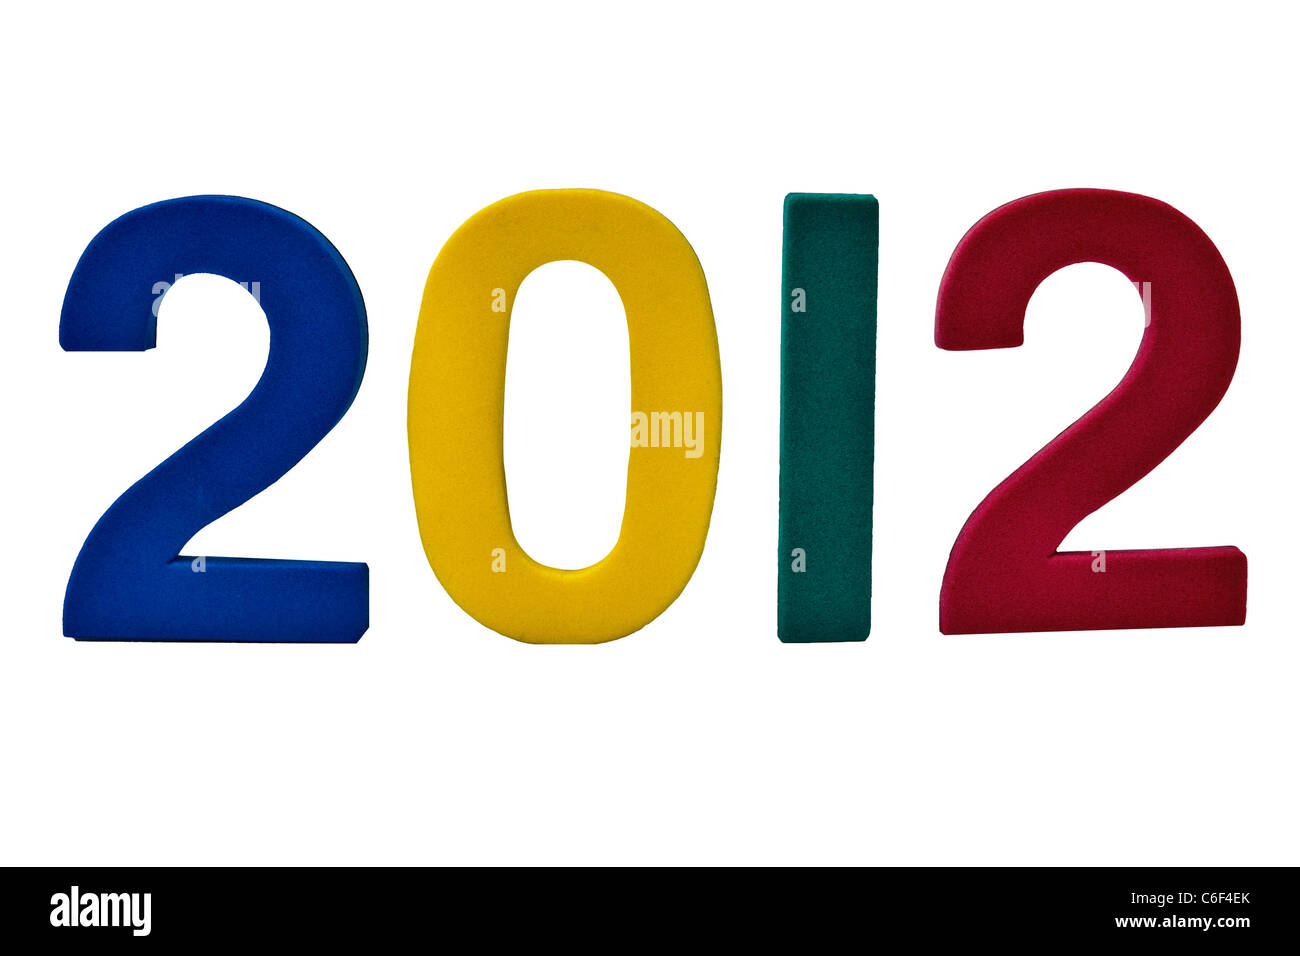 2012 year date View from the front. Close up (macro) - Stock Image